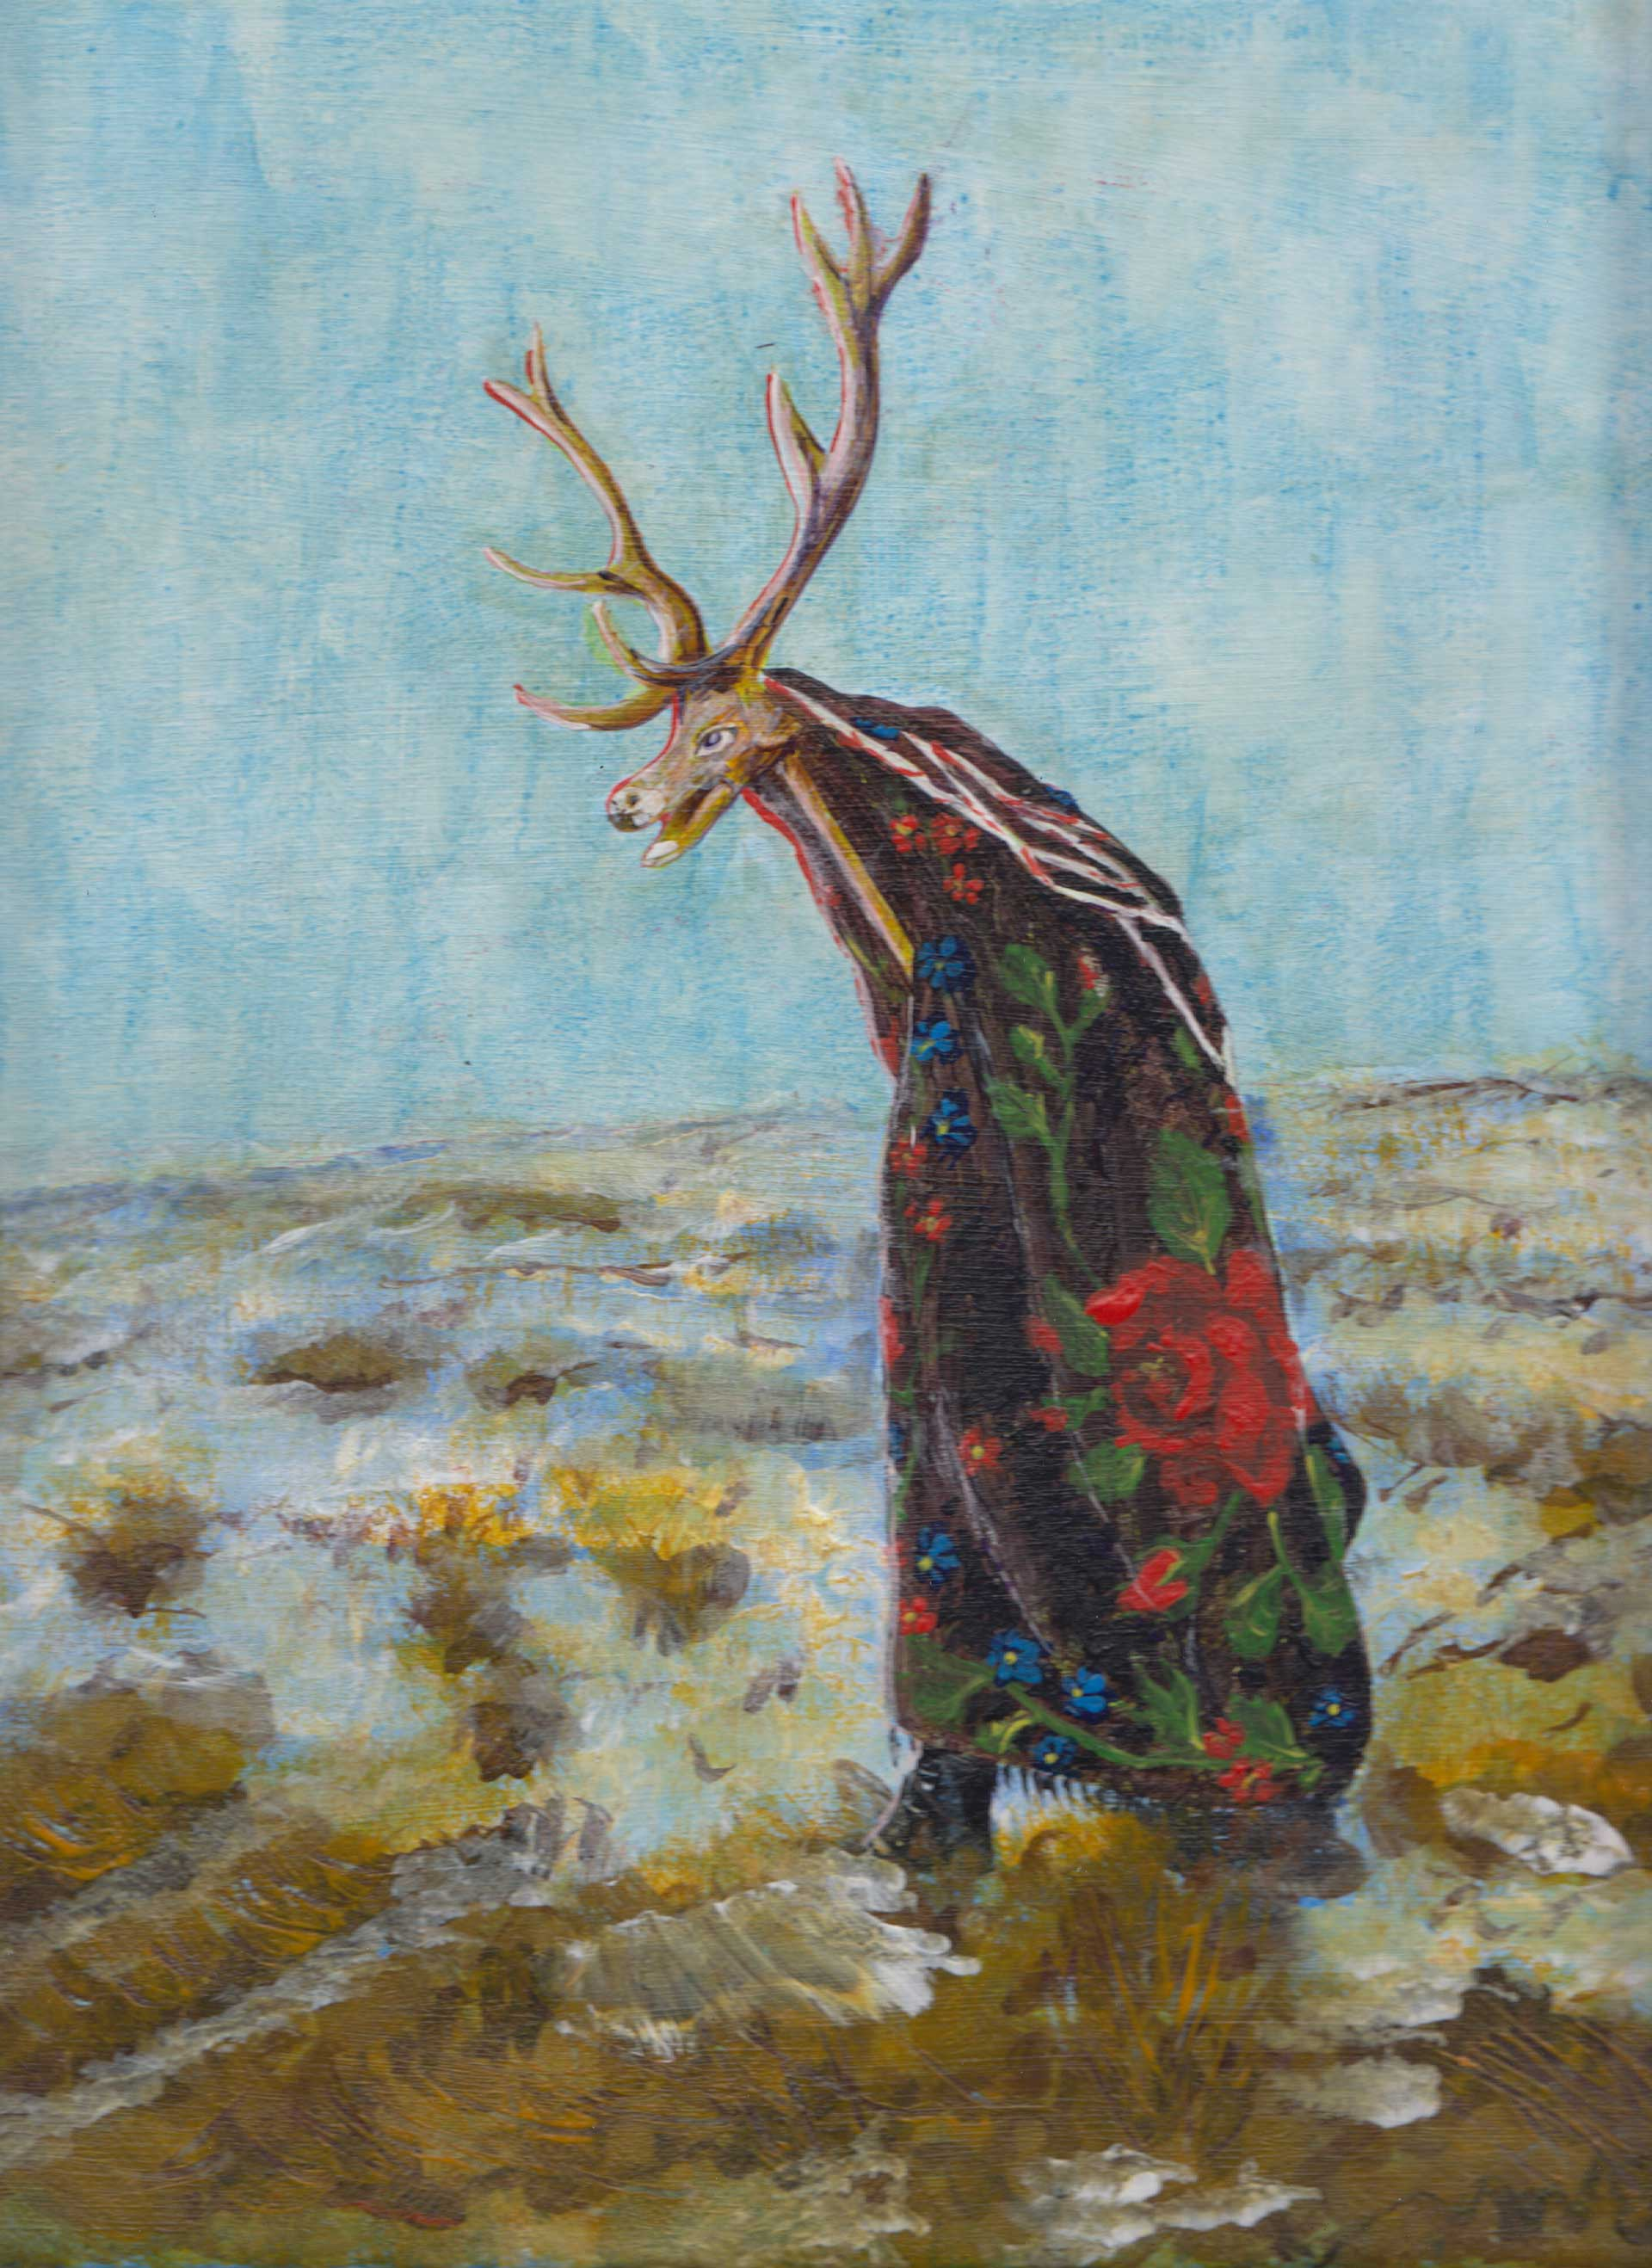 Deer masquerade, painting by Alessandro Bruno.